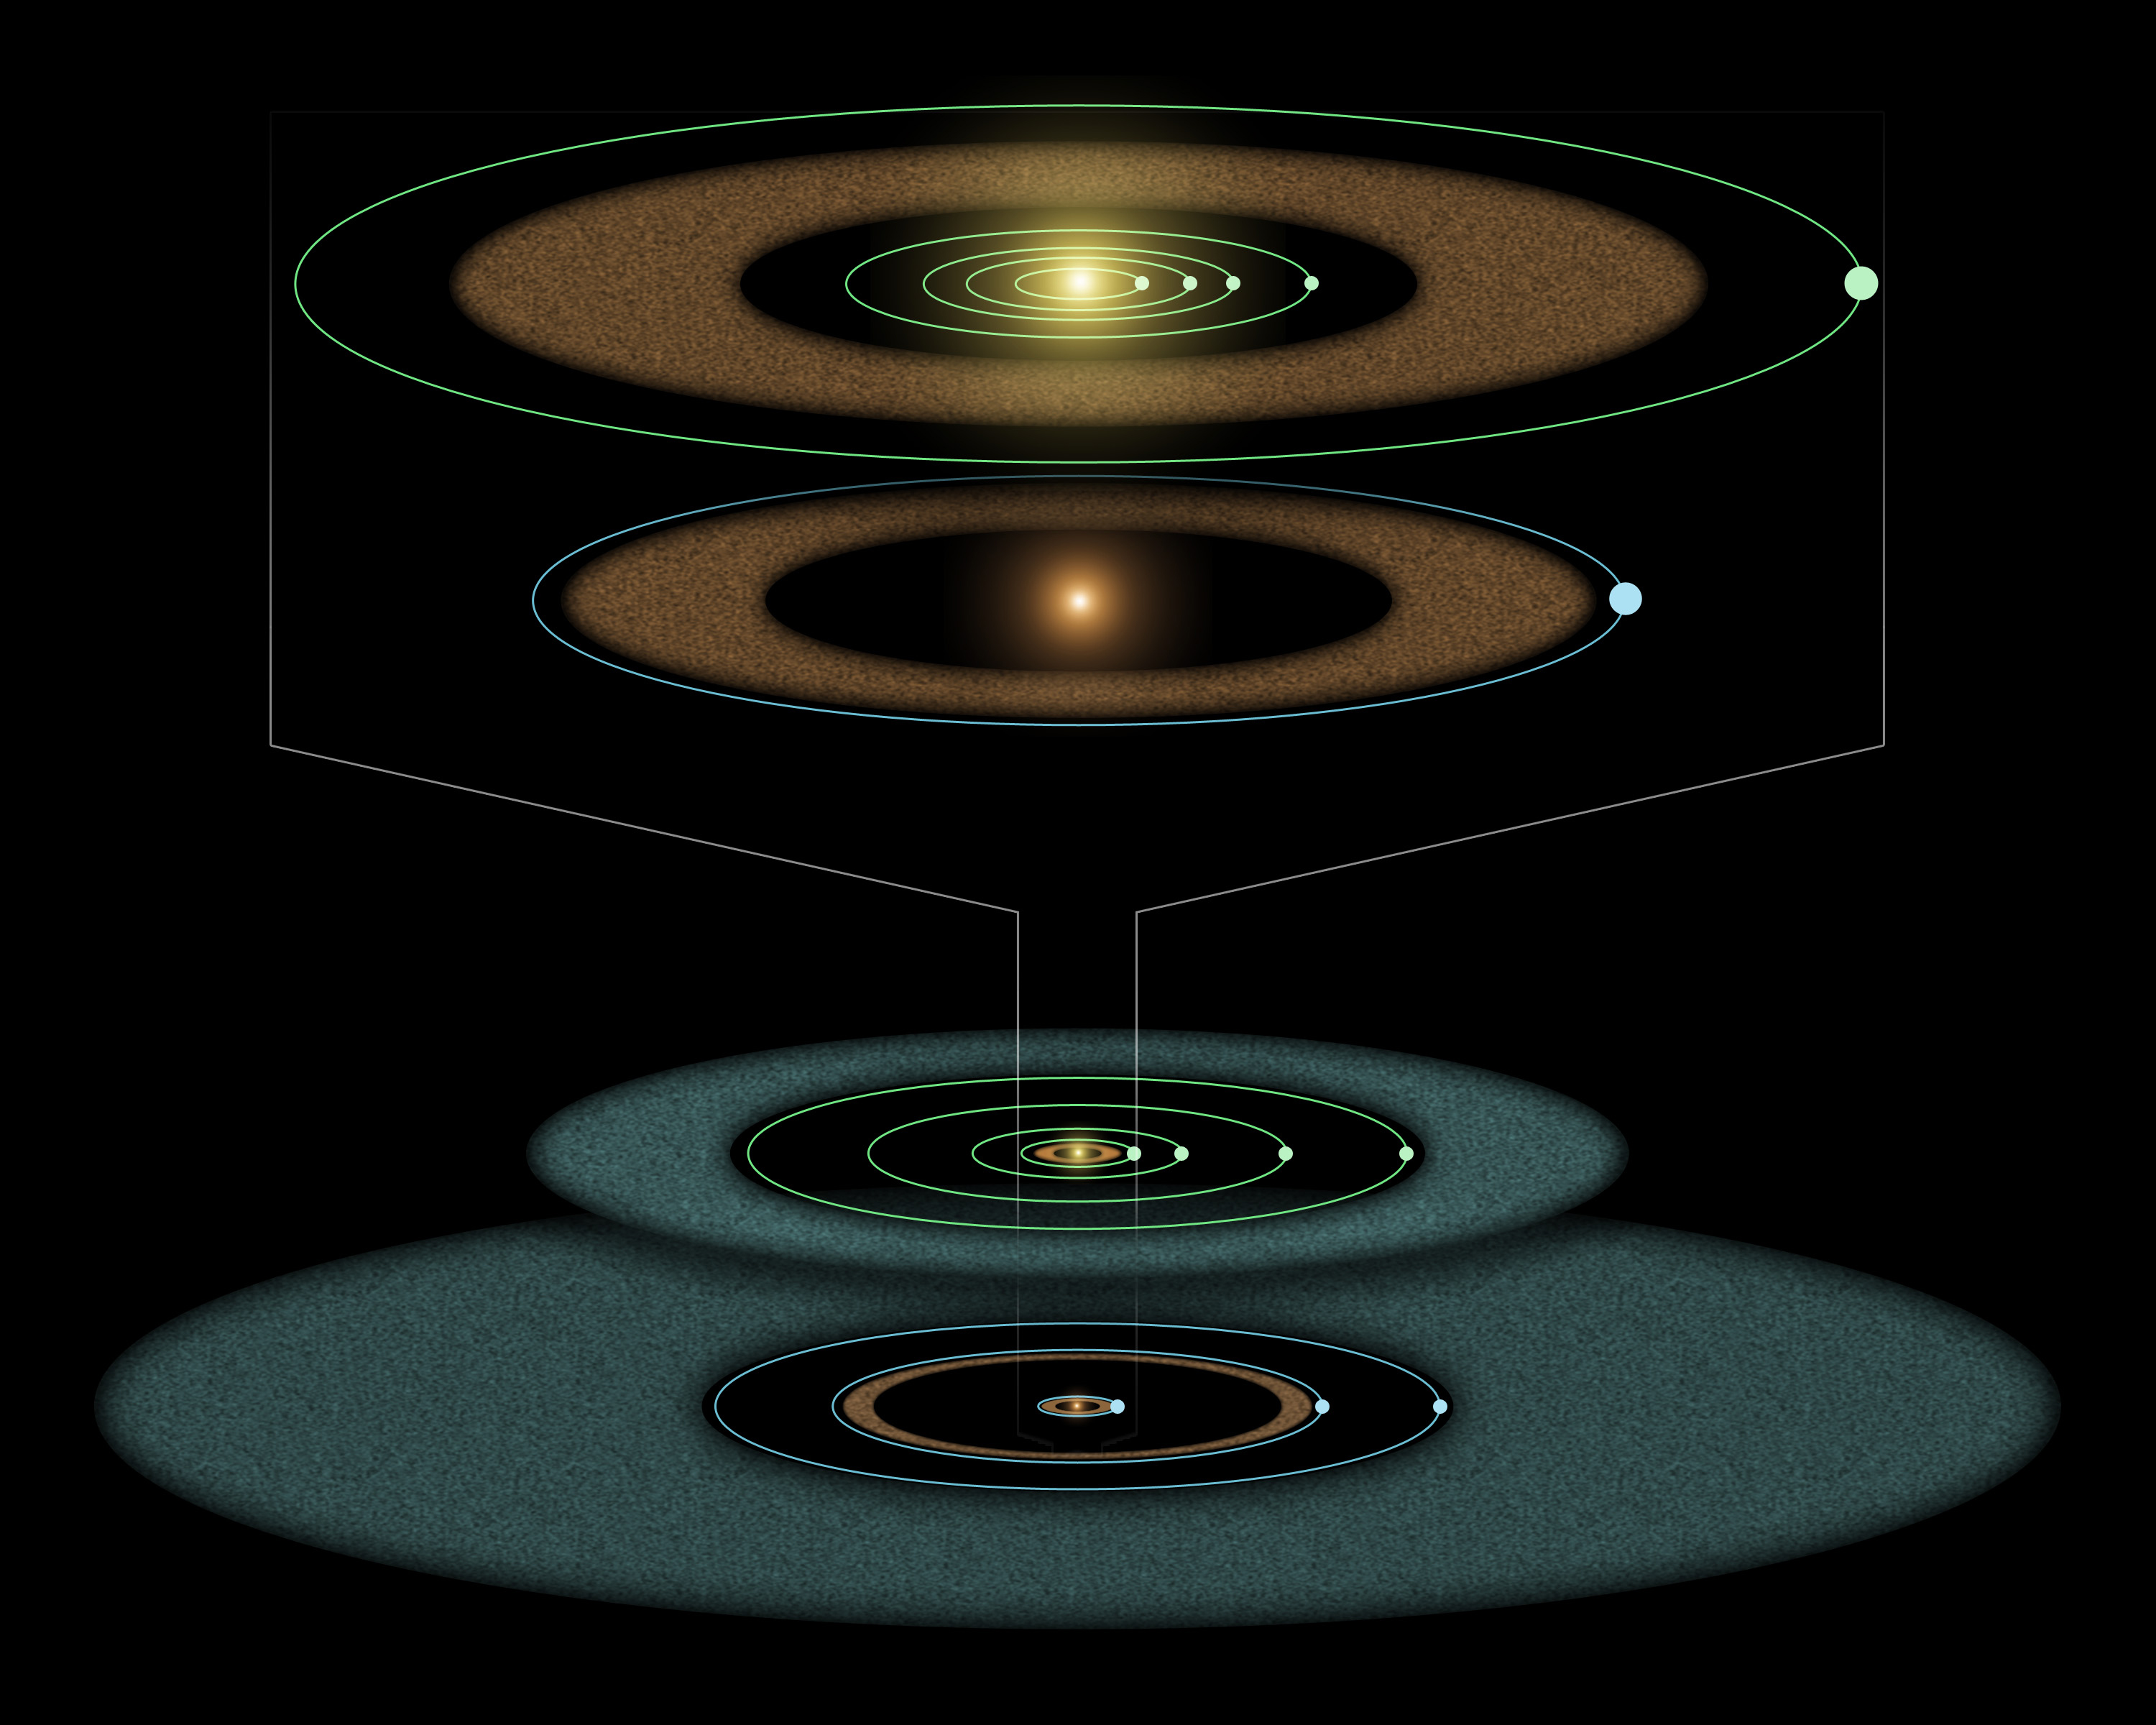 Nasa Young Solar System In The Making Diagram Full Resolution Unlabelled 17mb